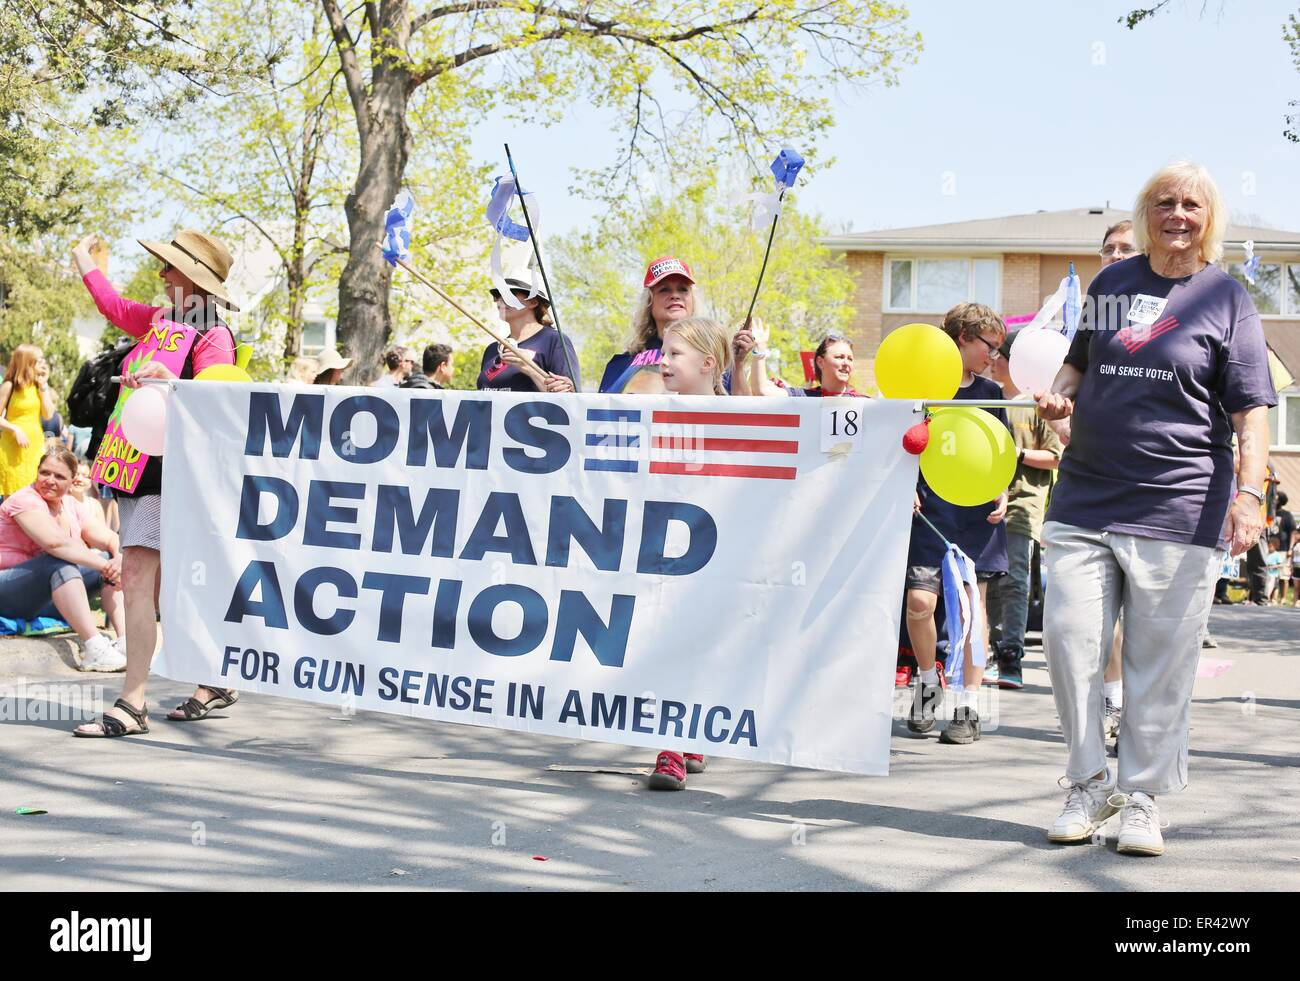 Mothers march for gun control in Minneapolis, Minnesota. - Stock Image